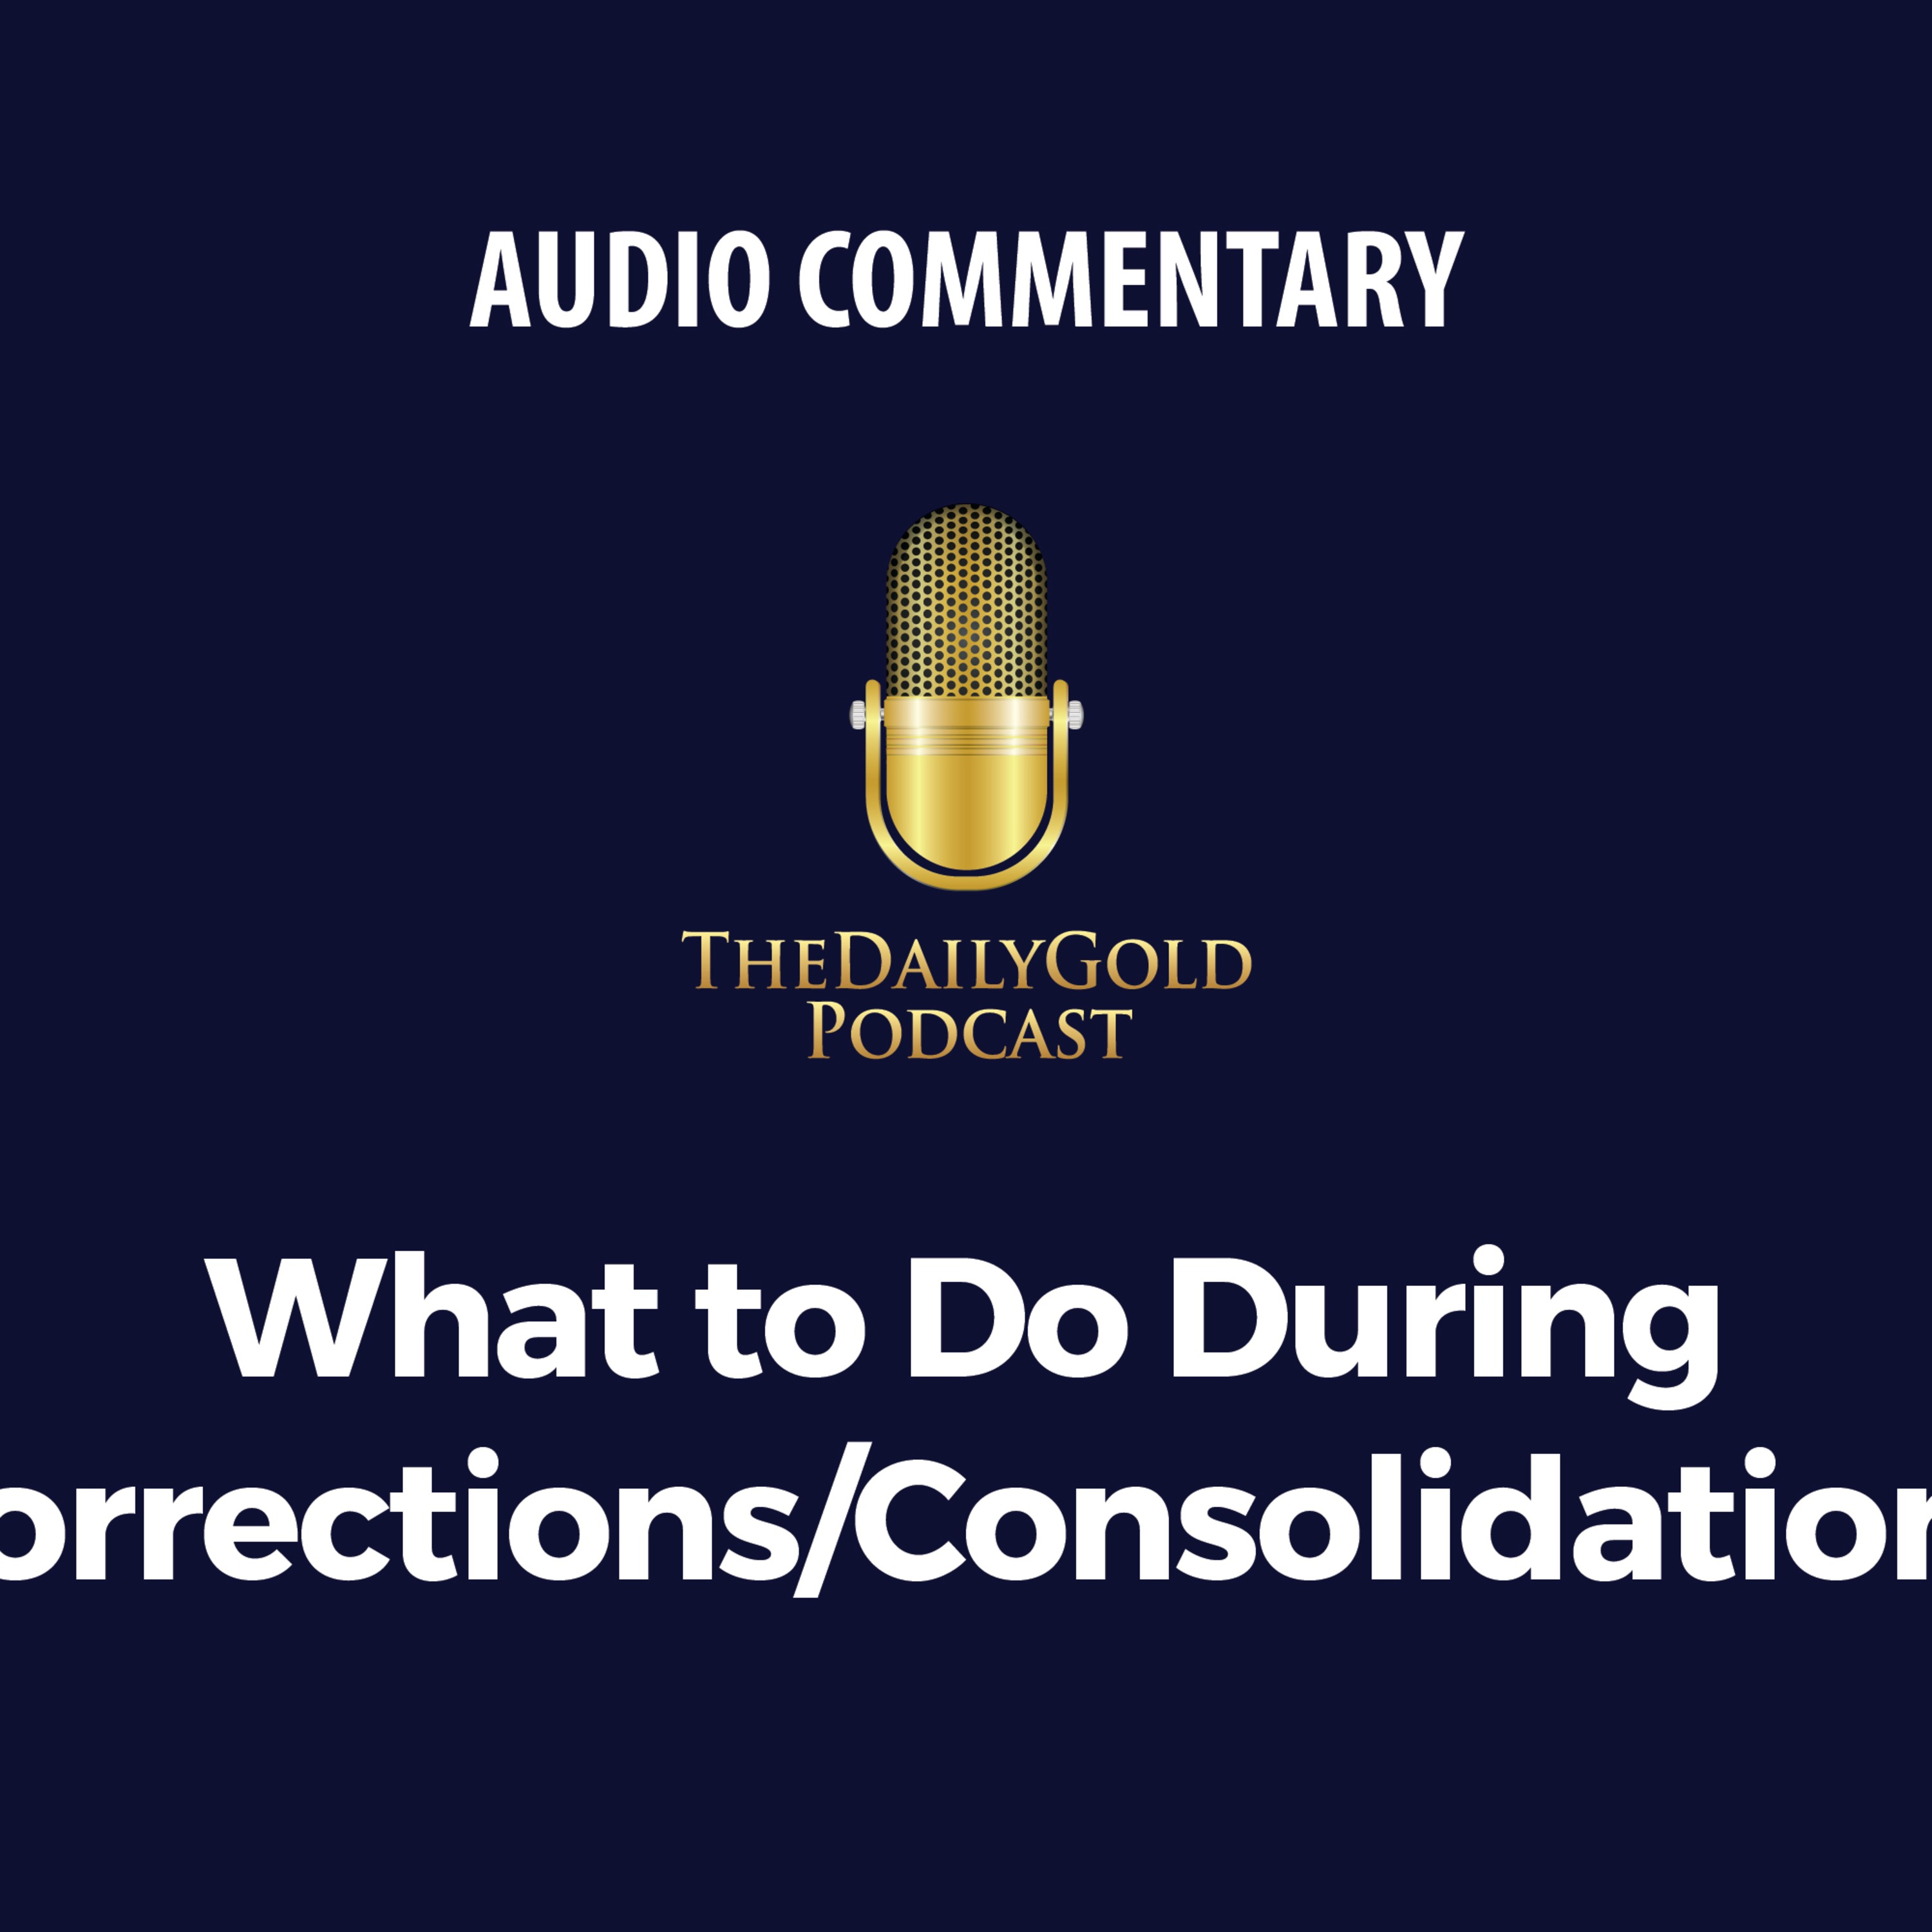 What to do During Corrections/Consolidations